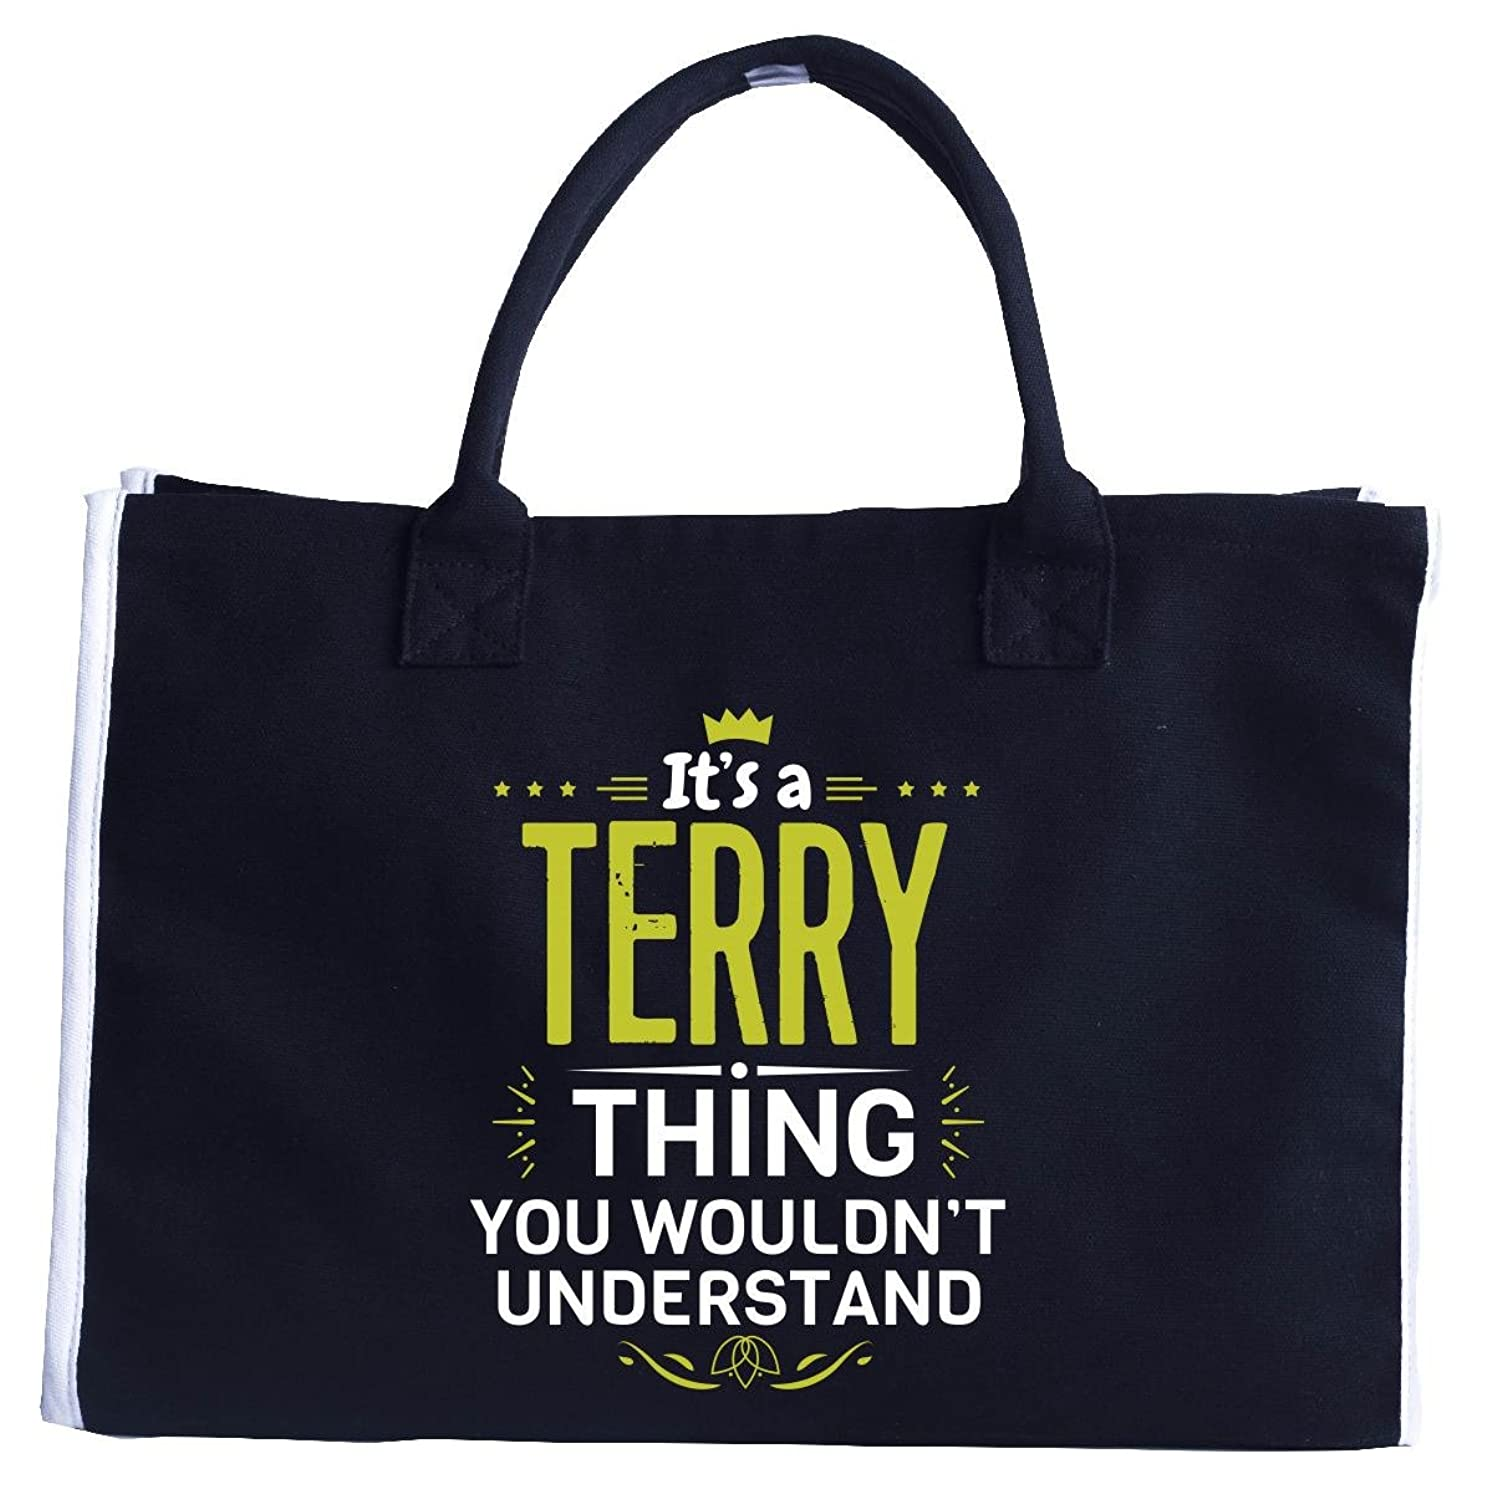 Its A Terry Thing You Wouldn T Understand - Tote Bag